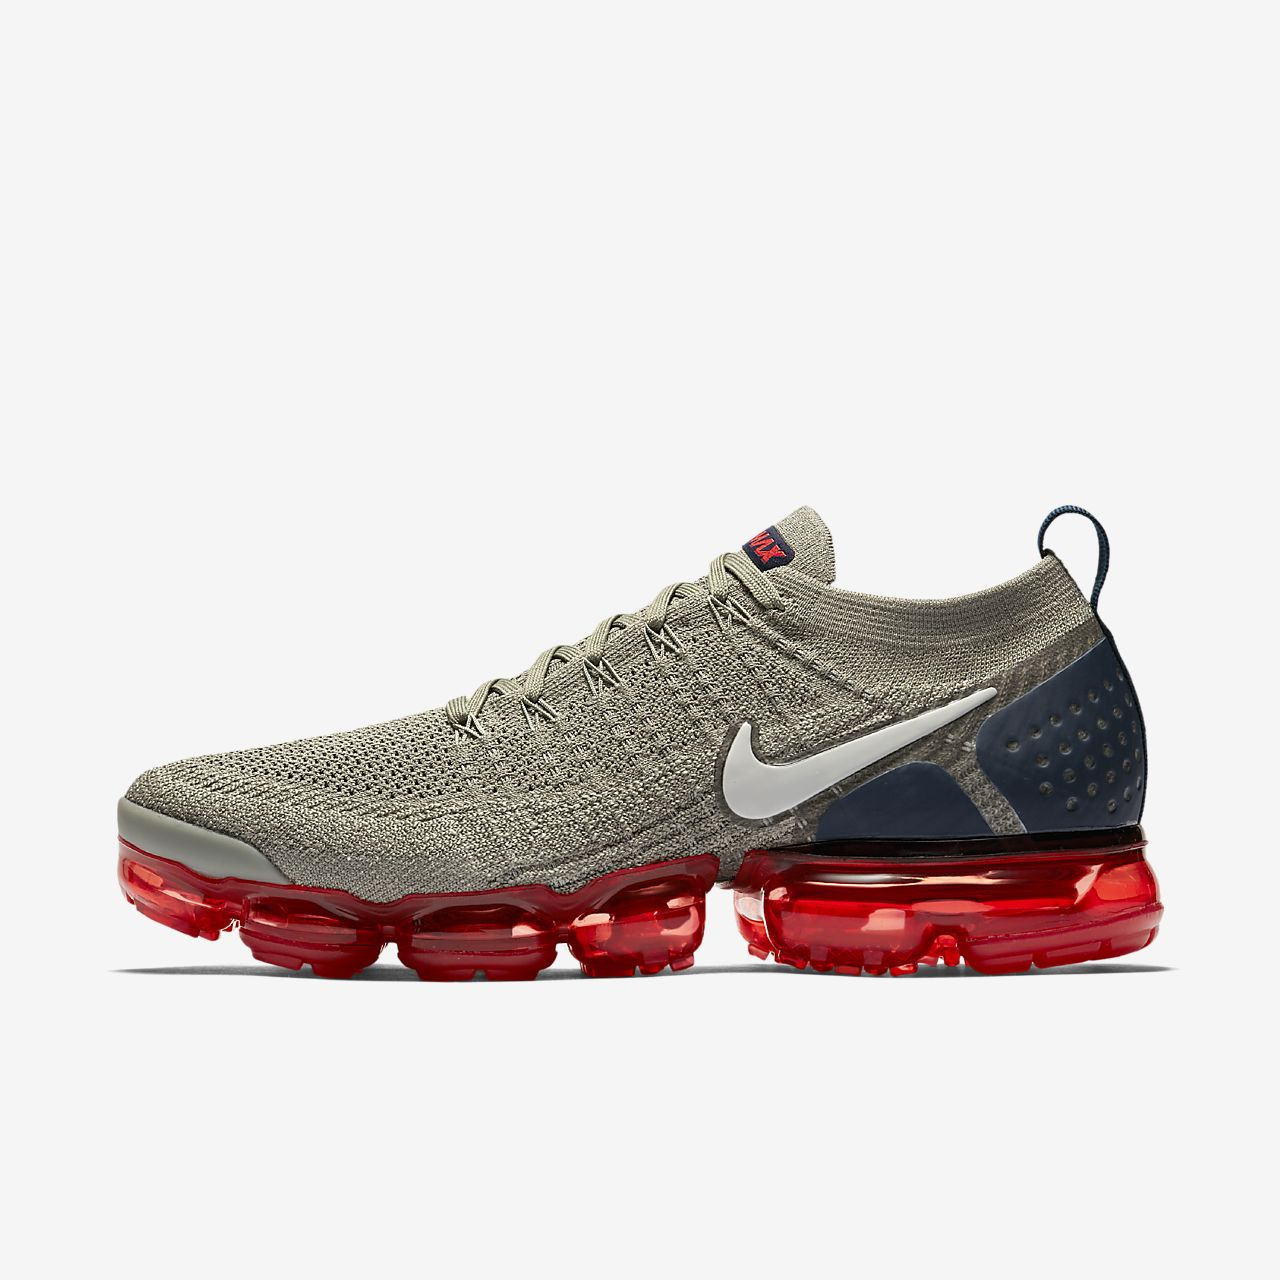 Nike Homme Flyknit 2 Air Vapormax Chaussure Be Pour ptRqdap6Ww